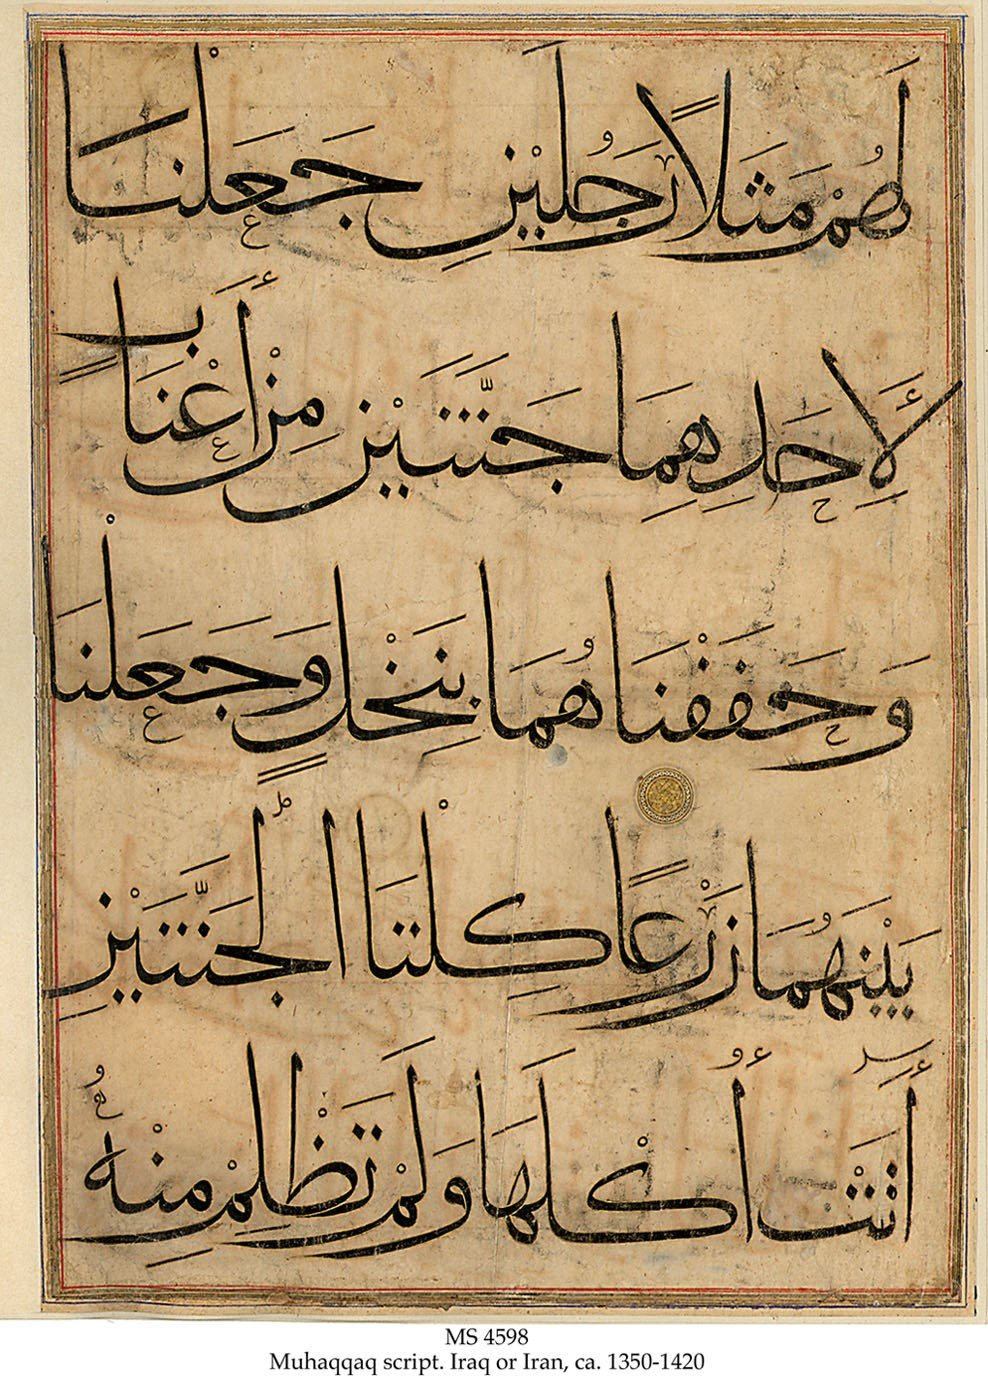 the development of arabic scripts History & development: a brief look the early history of arabic writing is obscure, and what historical records do exist are controversial here is what we know for sure: the arabic language is very ancient, but it was not a written language until perhaps the third or fourth century ce.